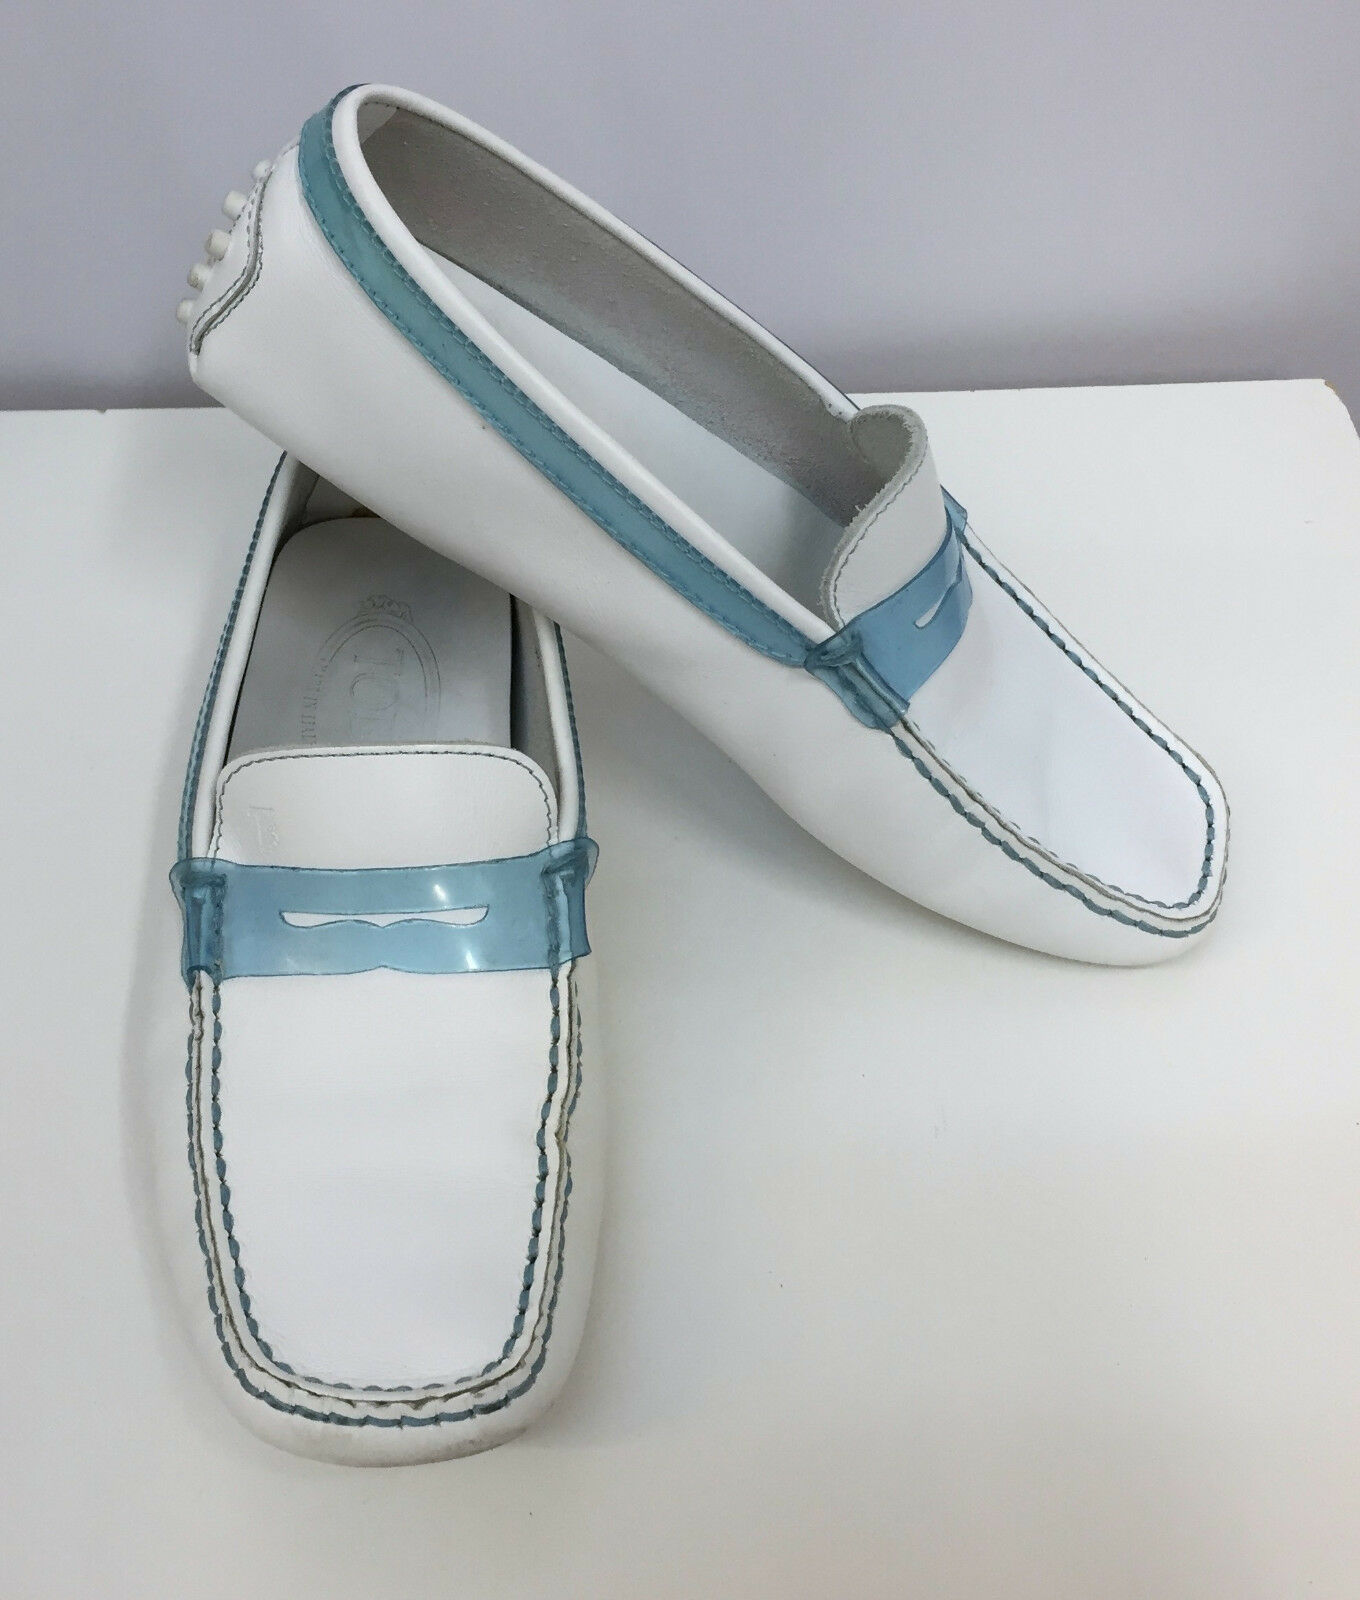 TOD'S LOAFERS SHOES DRIVING SHOES WHITE LEATHER BLUE PATENT LEATHER TRIM 5 1/2